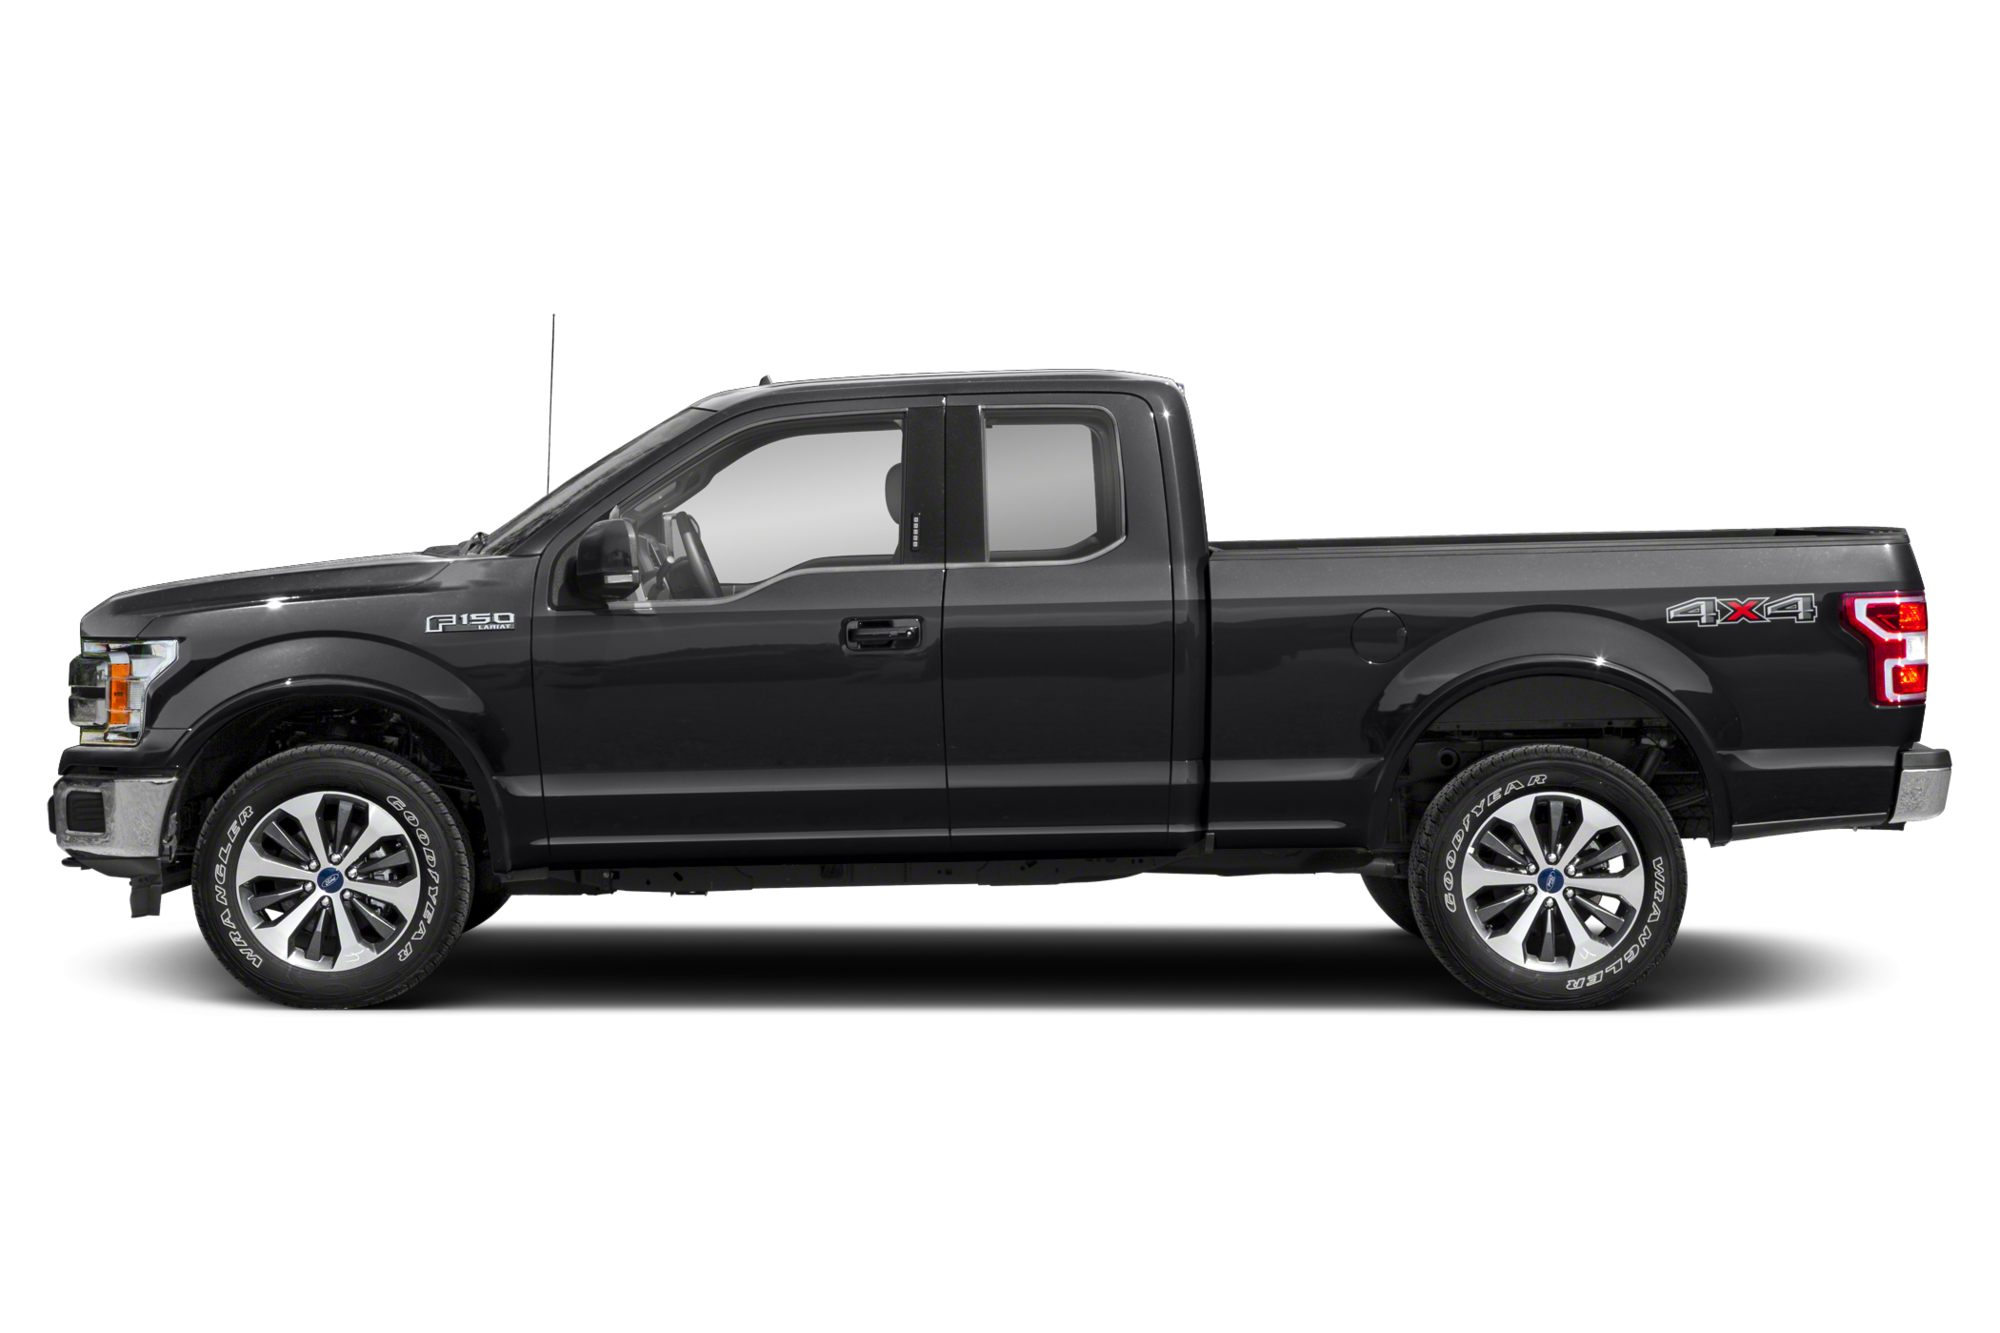 2018-2020 Ford F-150: Recall Alert | News from Cars.com